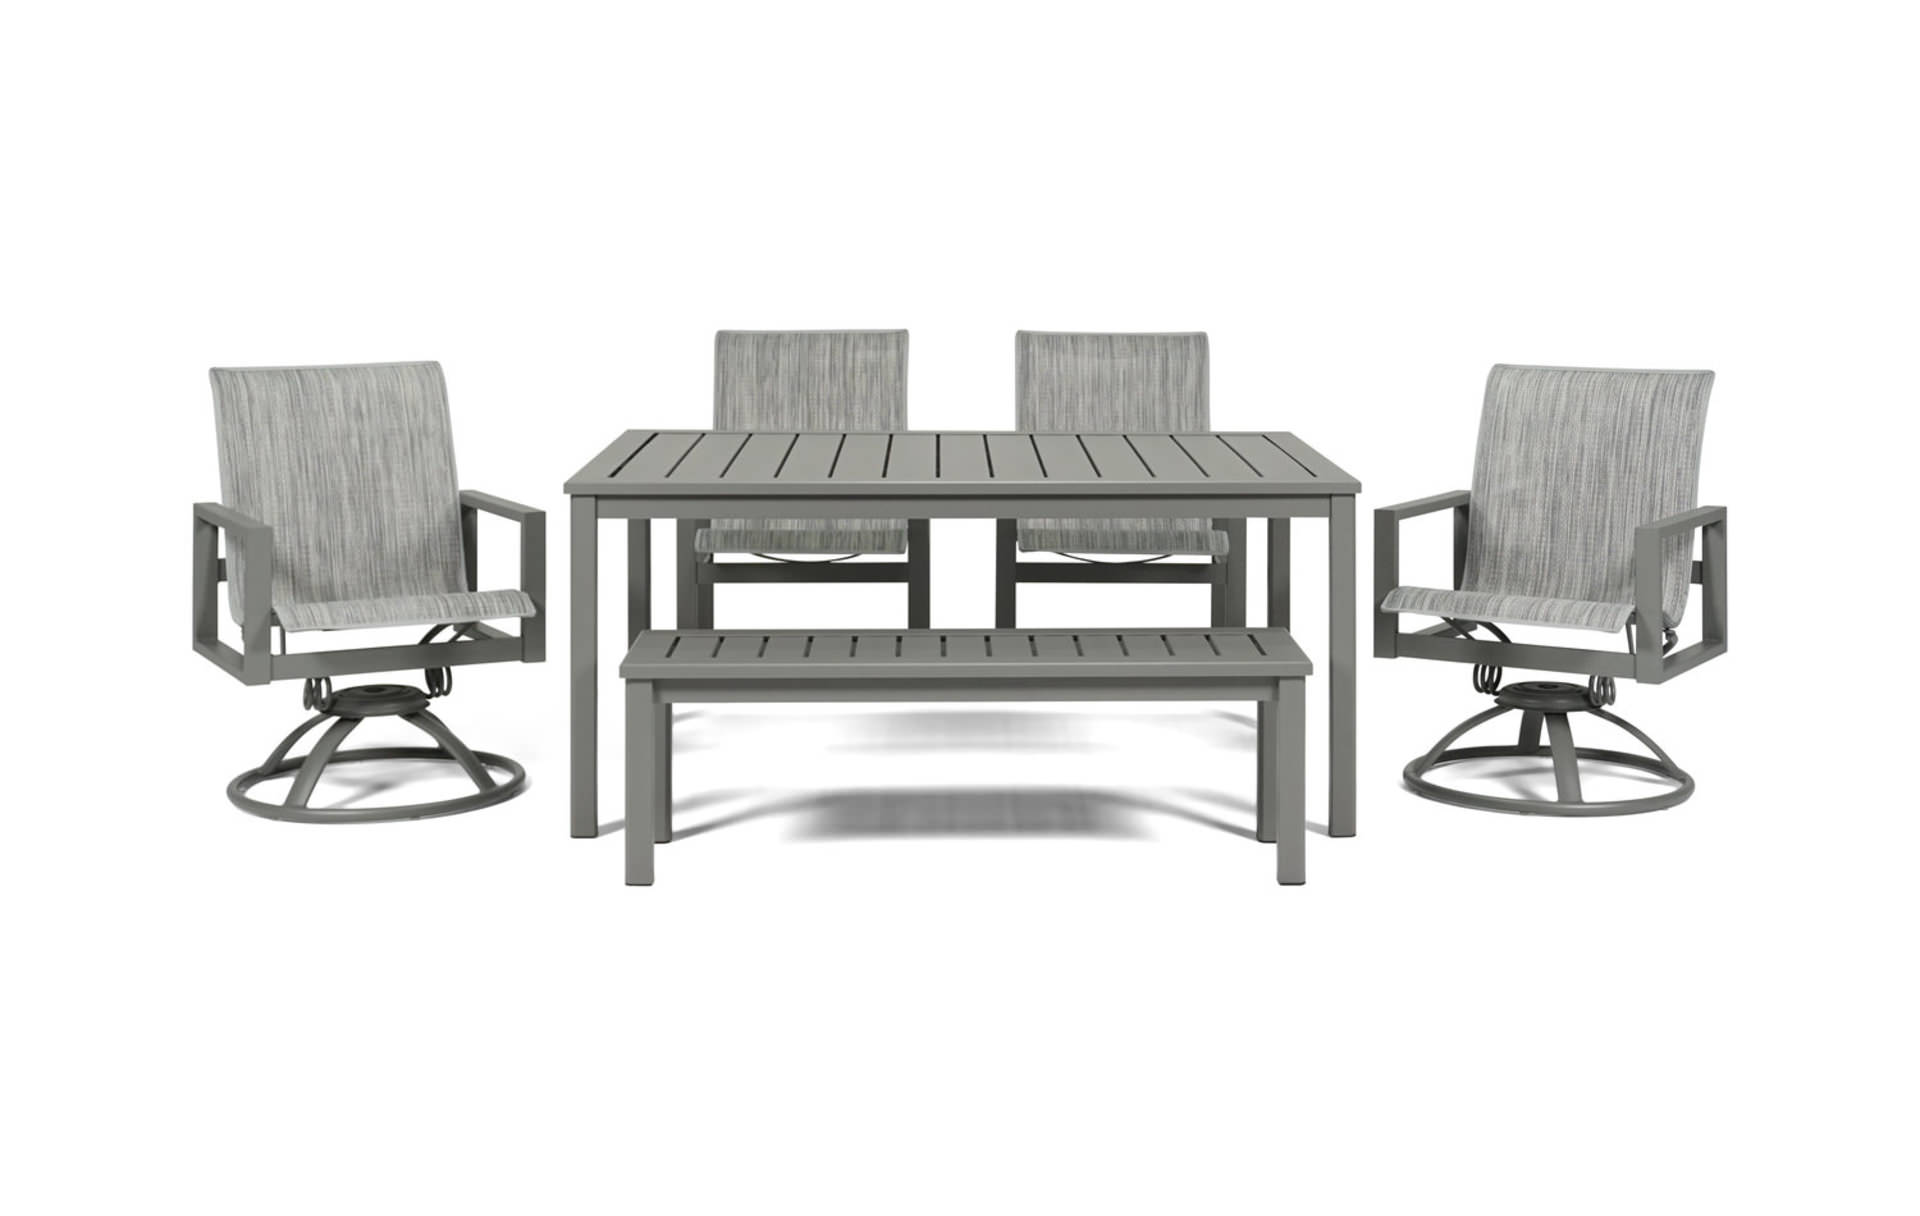 Charmant American Made Patio Furniture Can Bring Exceptional Style And Quality To  Your Outdoor Living Space.